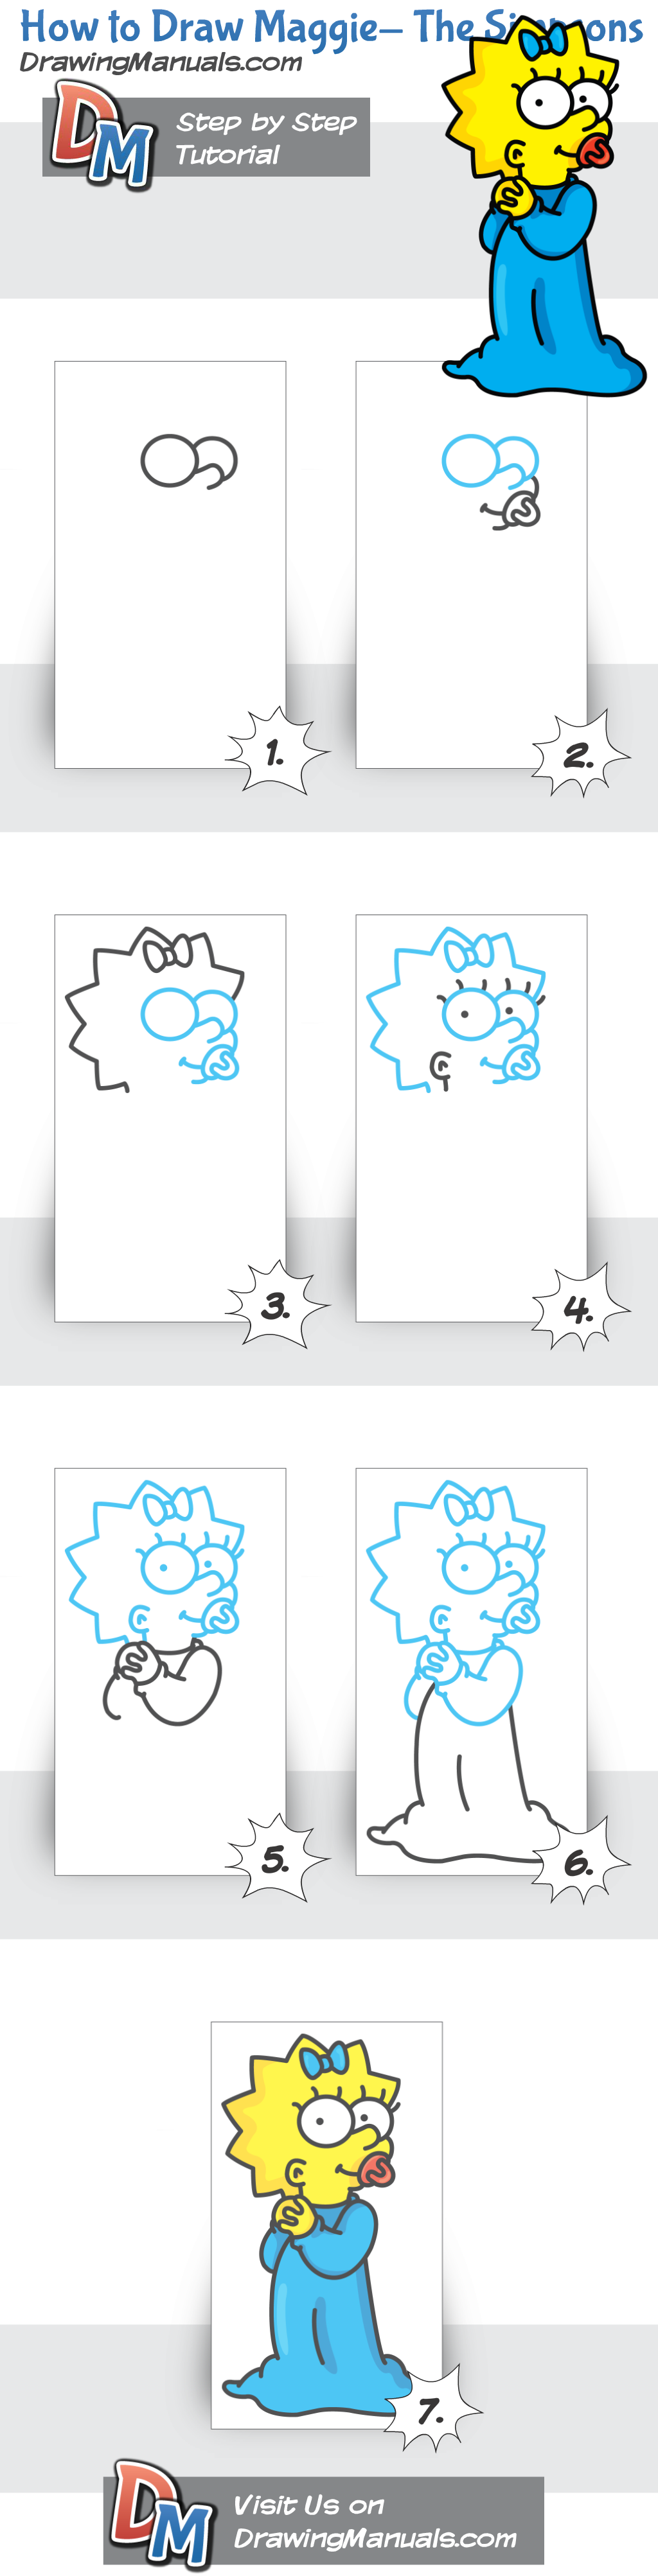 How+to+Draw+Maggie+from+The+Simpsons,+Cartoons